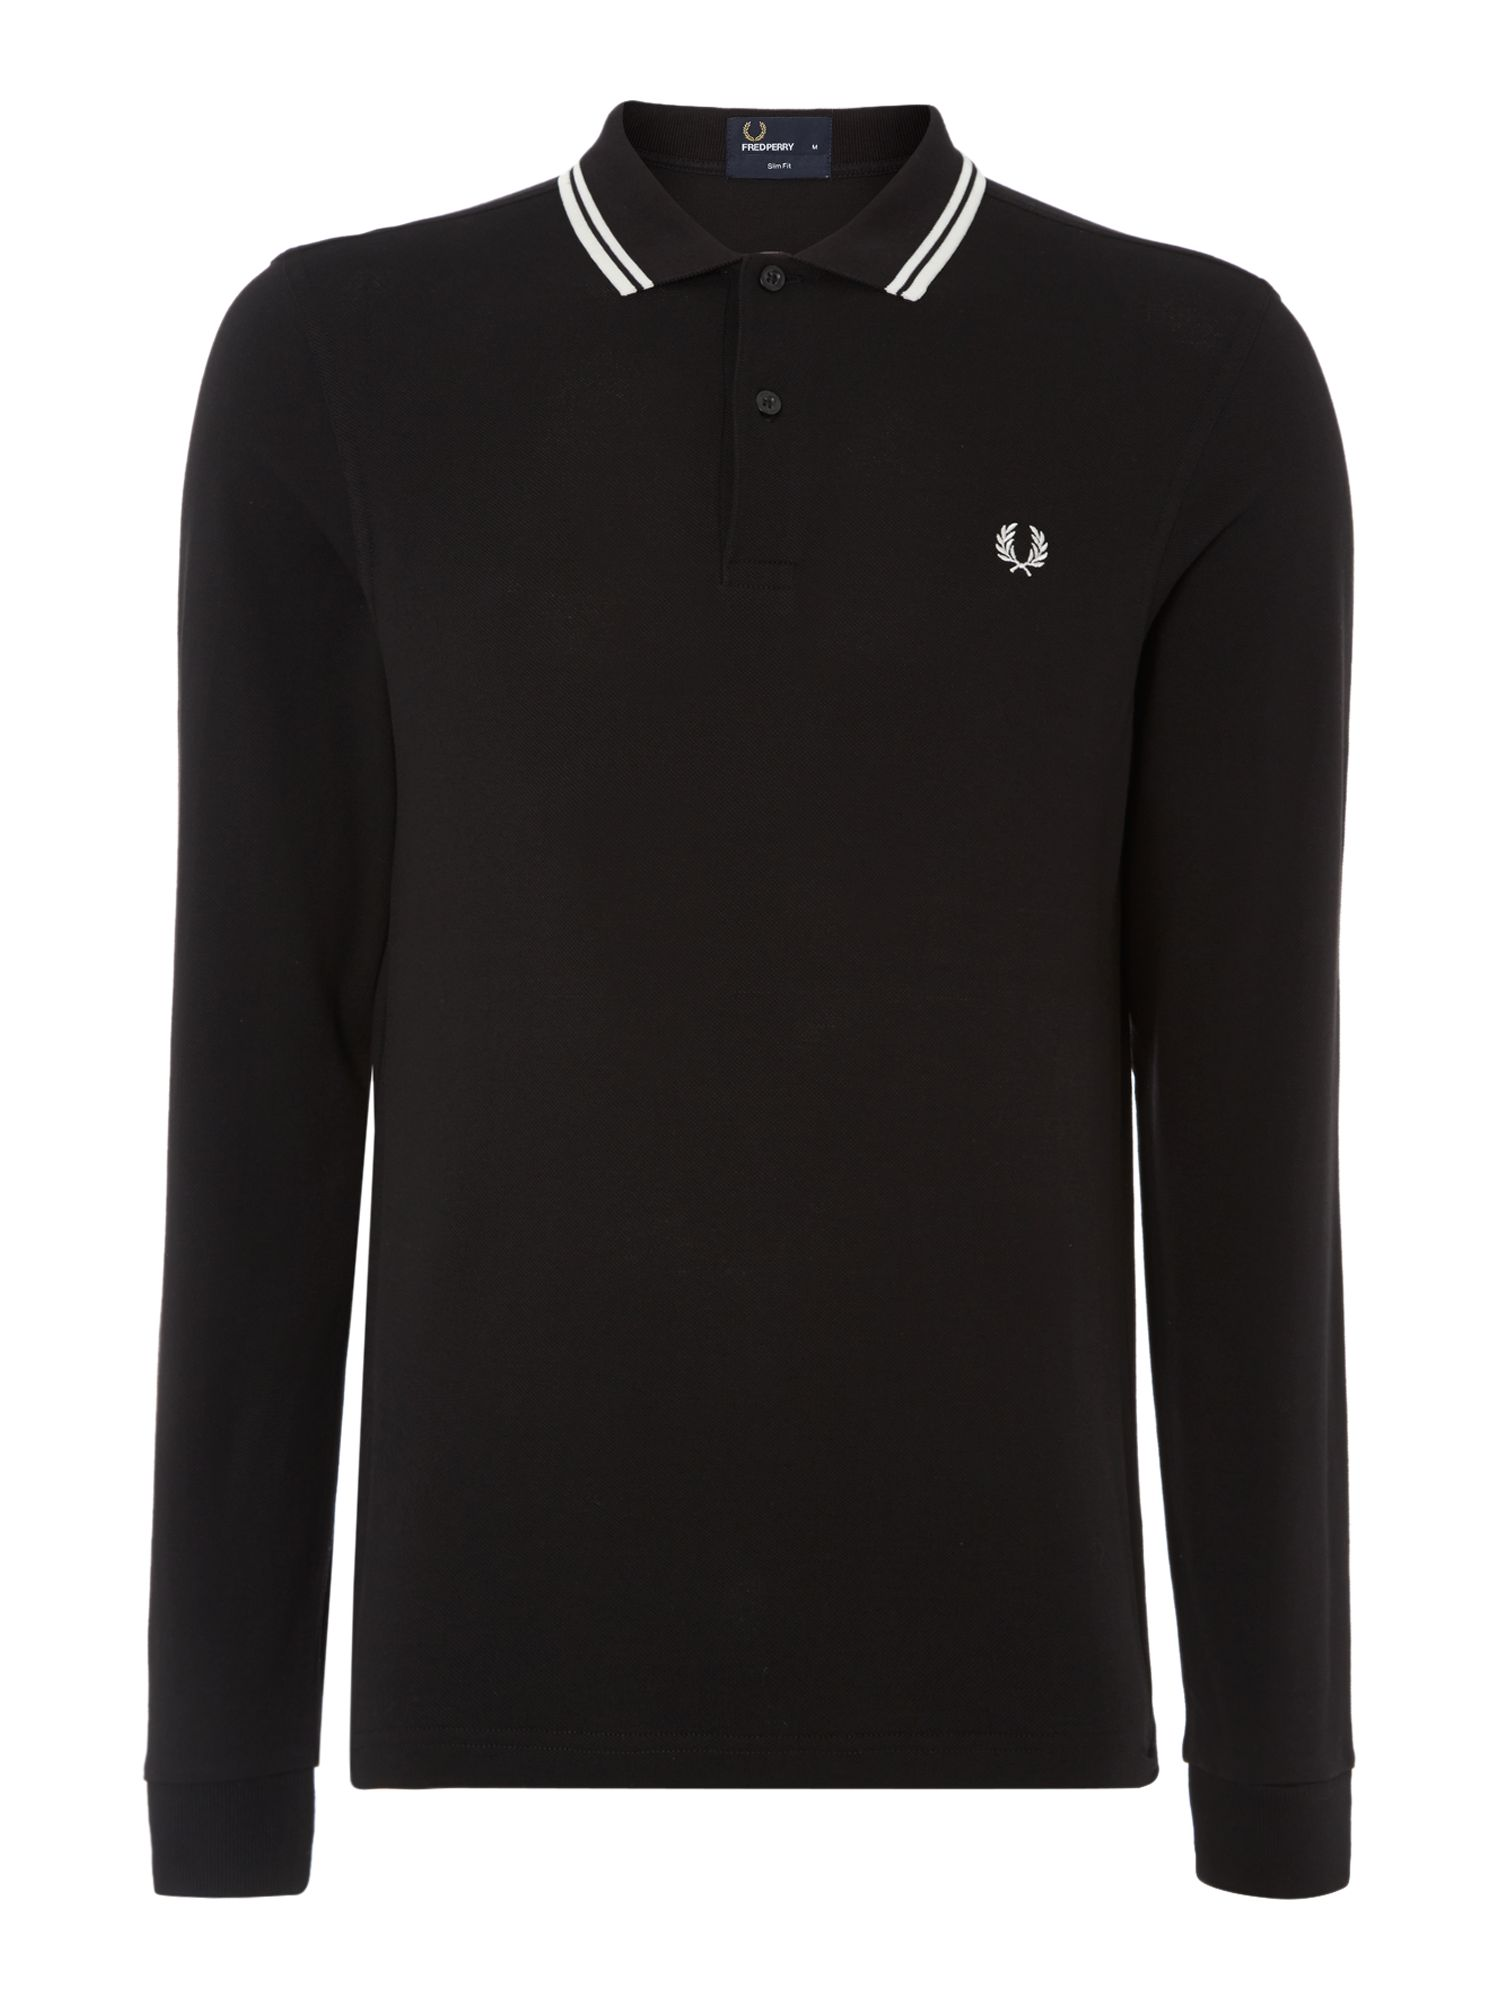 Twin tipped long sleeved polo